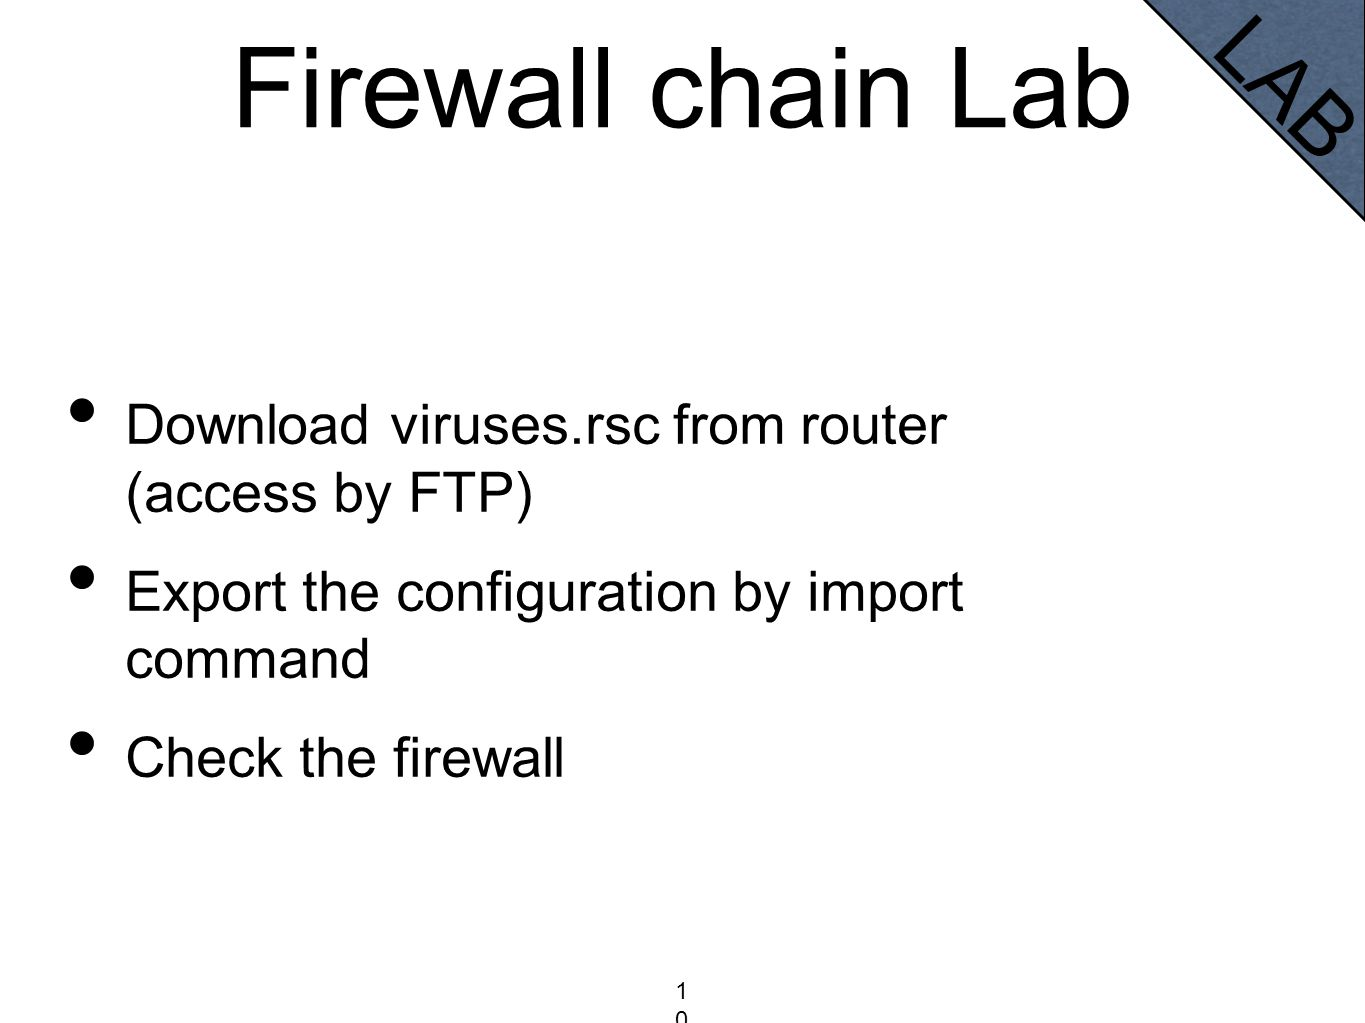 Firewall chain Lab Download viruses.rsc from router (access by FTP) Export the configuration by import command Check the firewall 100100100 LAB